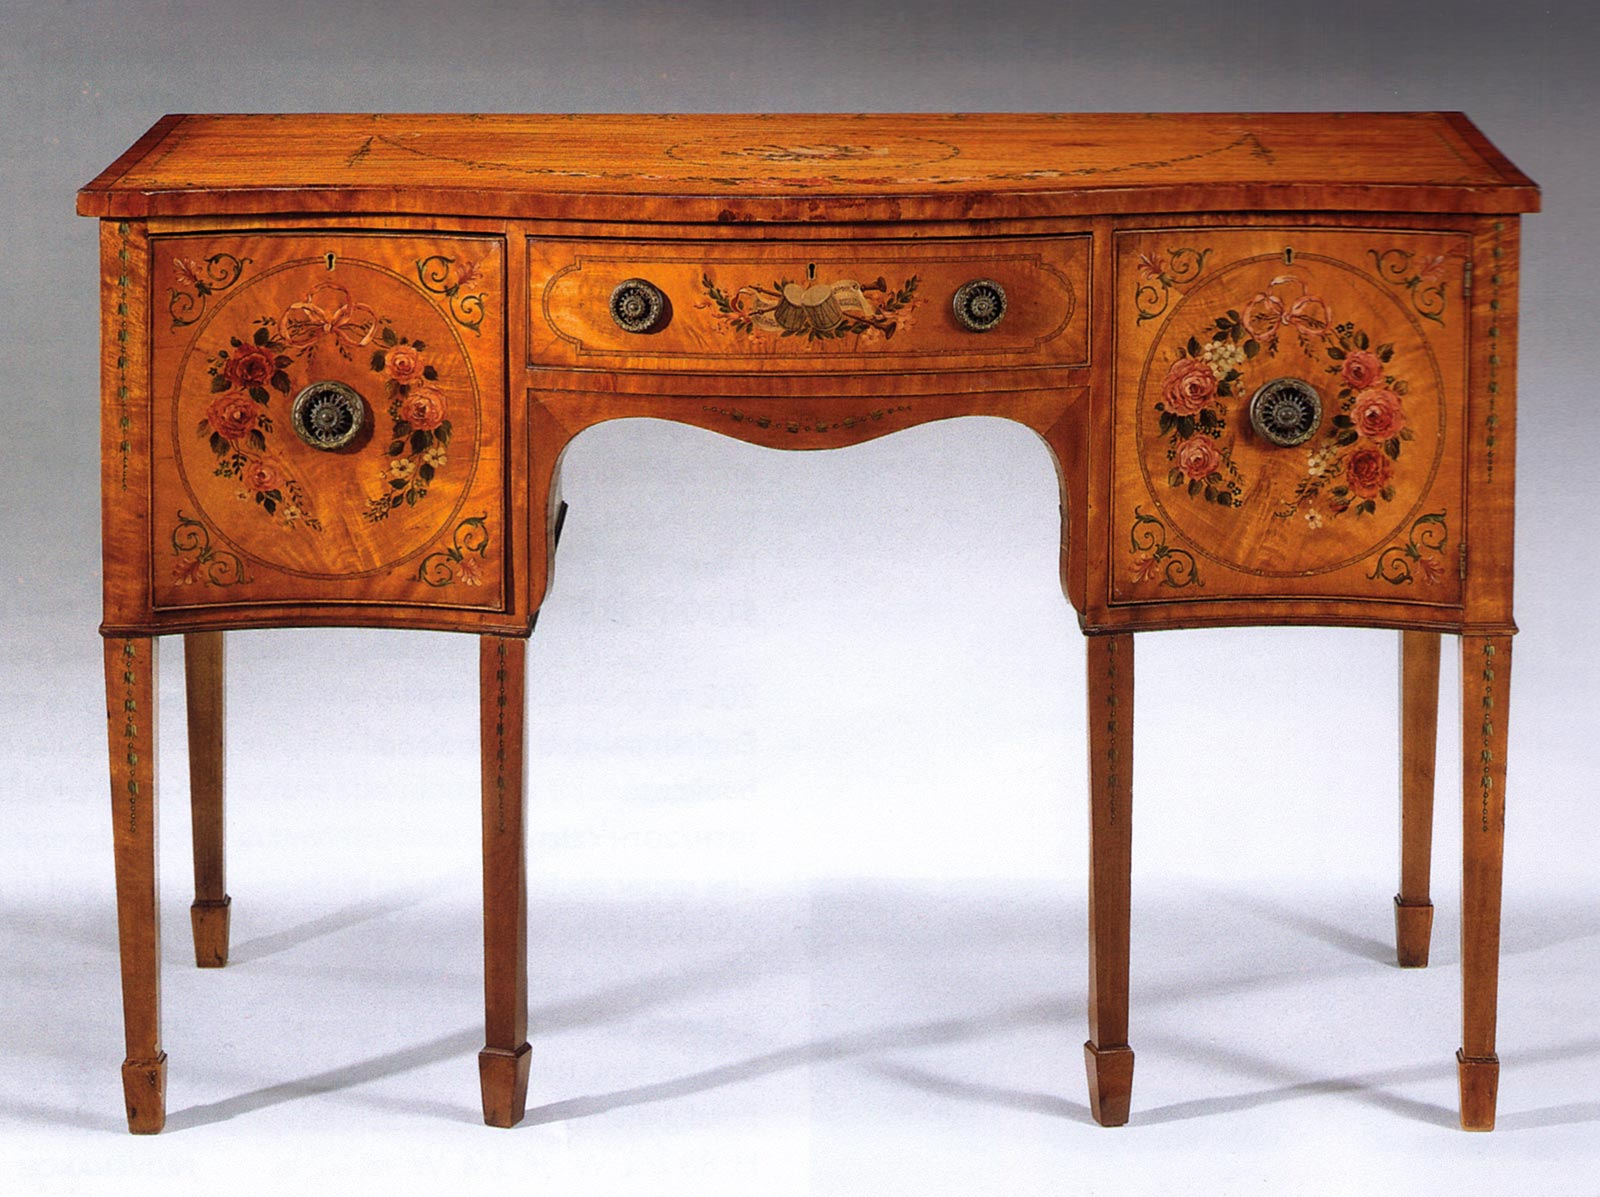 Edwardian, painted satinwood small sideboard